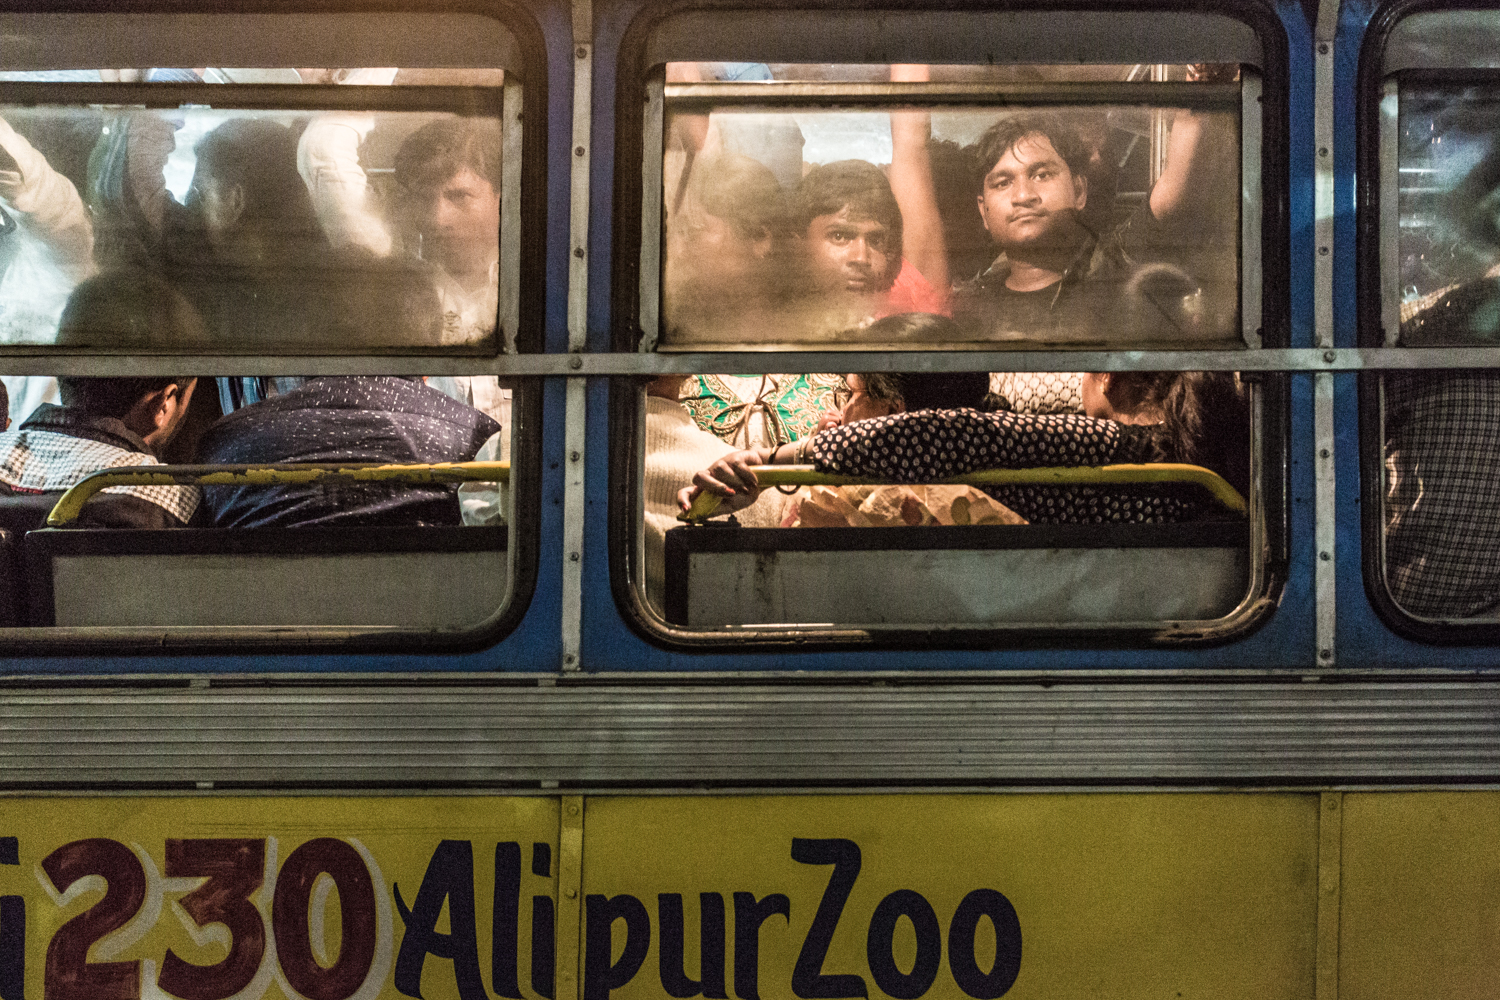 Buses were especially packed on Christmas in Kolkata, a city with 4.6 million residents.